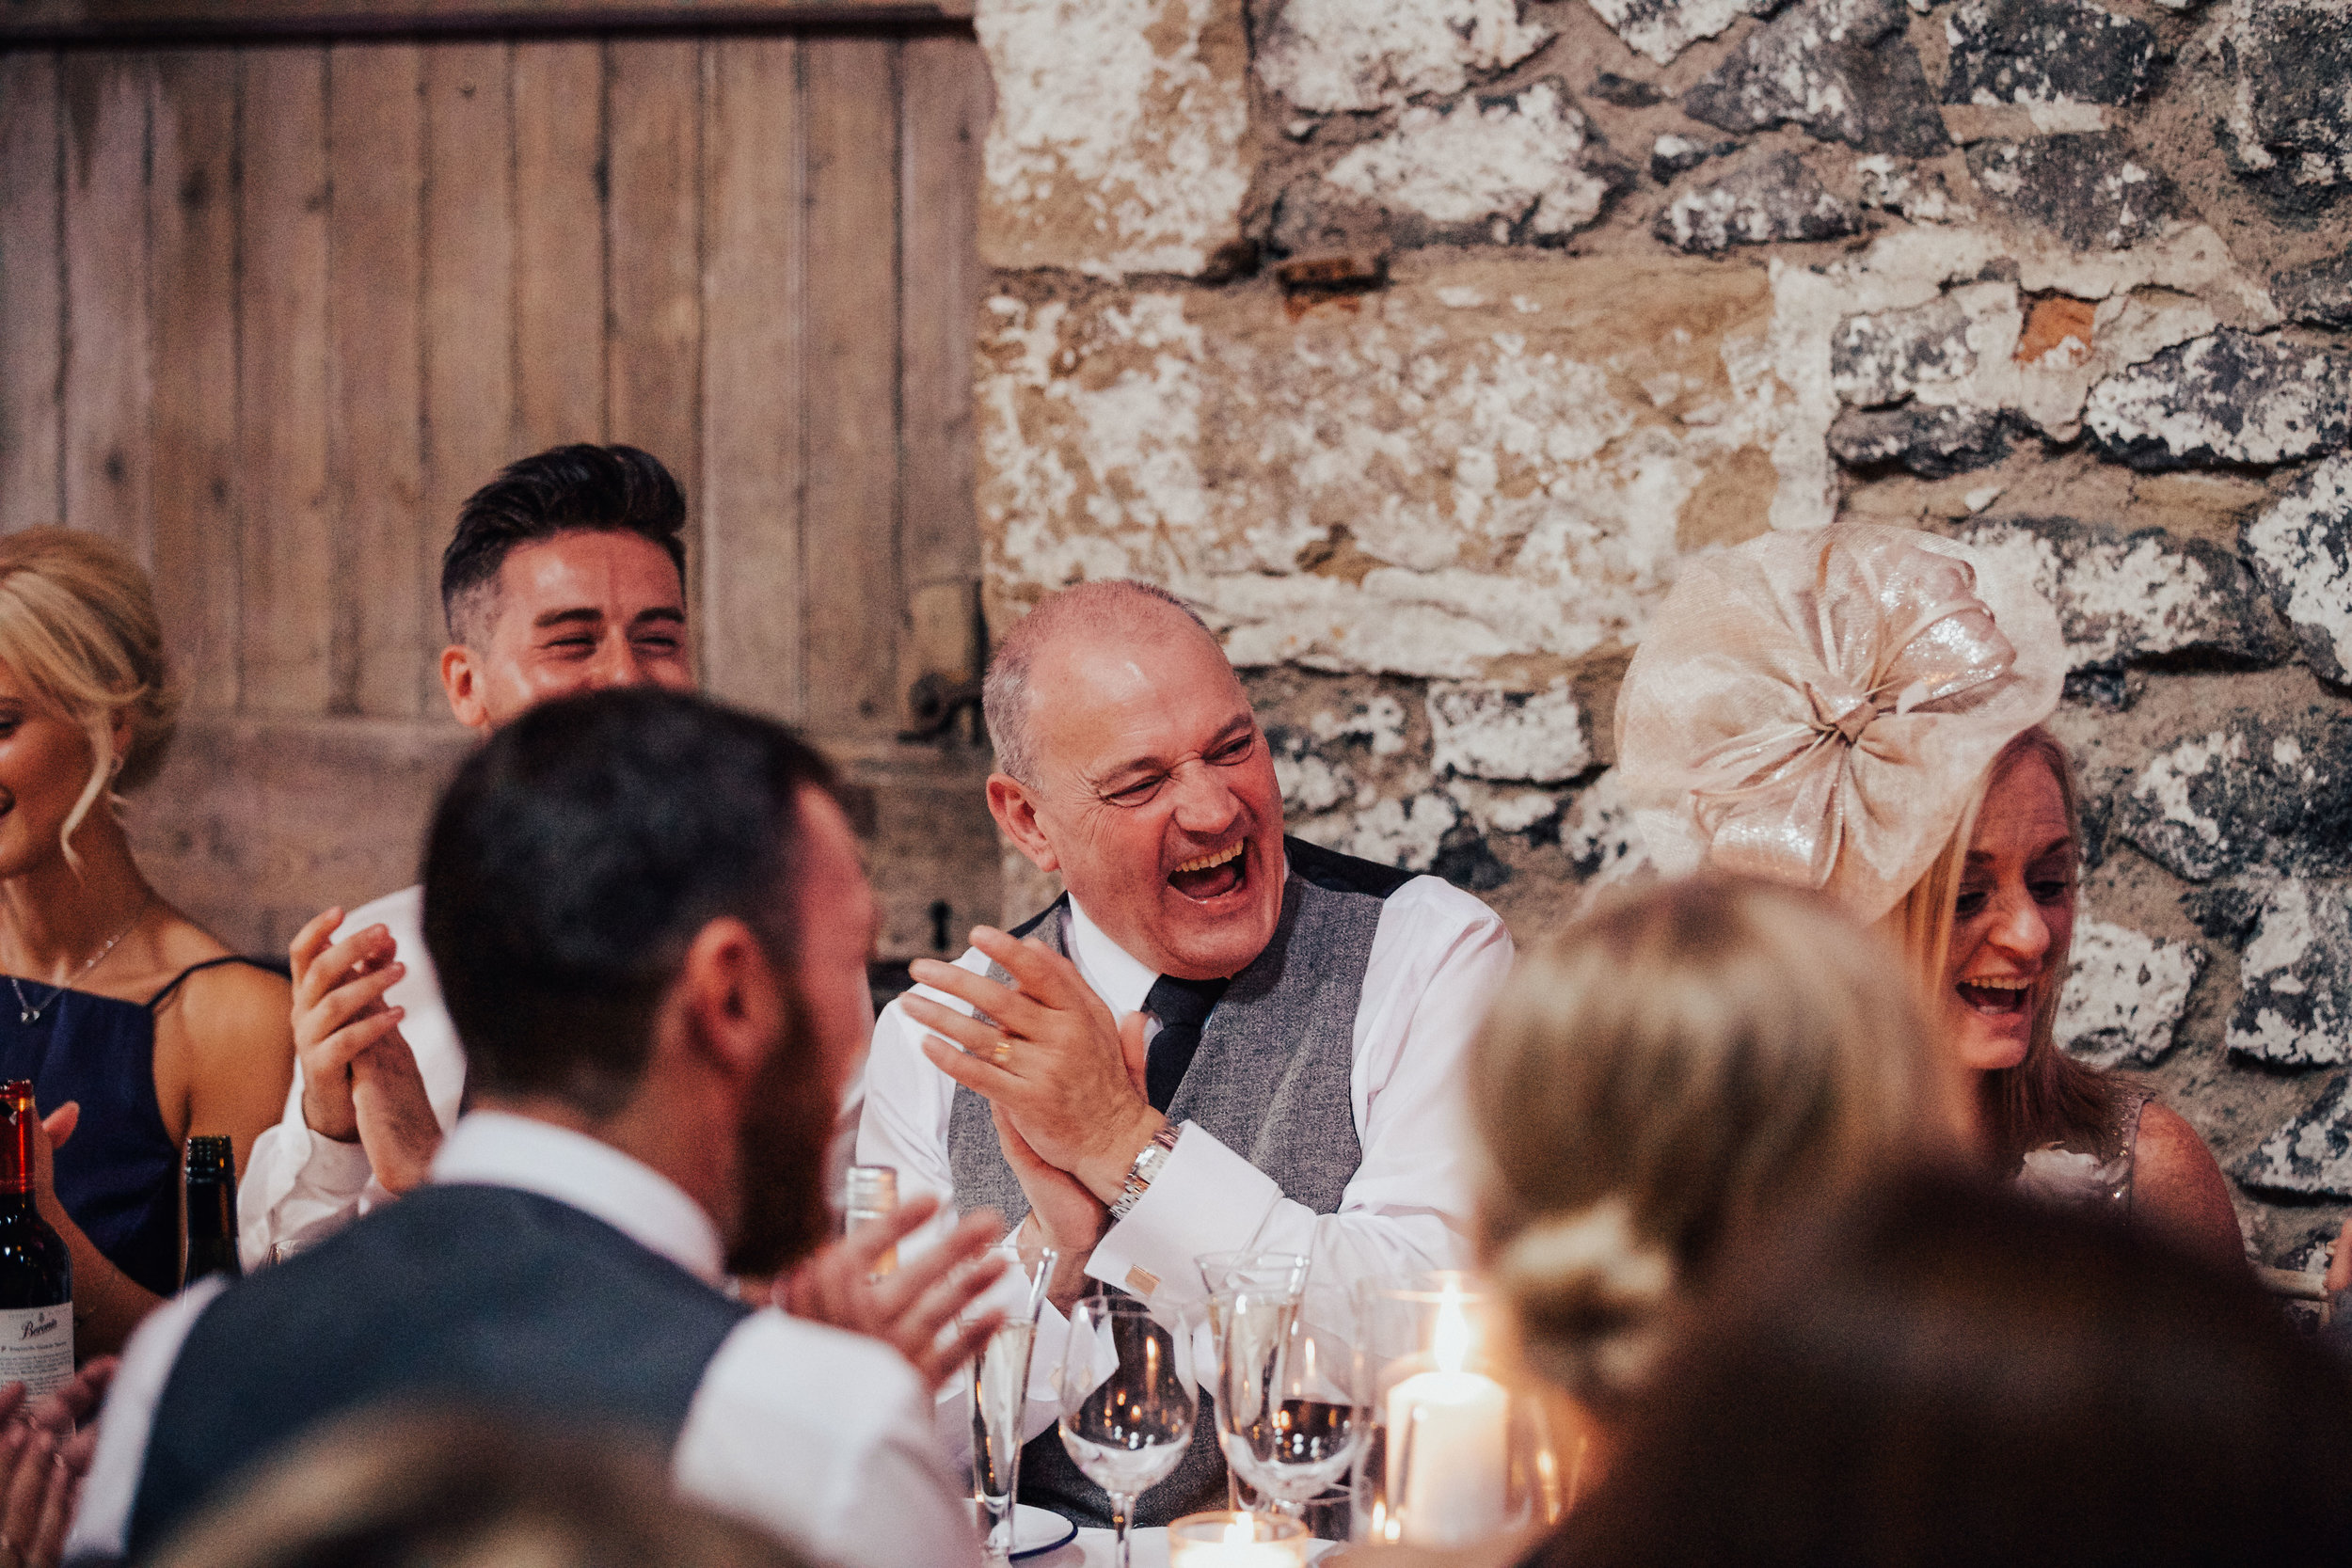 BYRE_AT_INCHYRA_WEDDING_PHOTOGRAPHER_PJ_PHILLIPS_PHOTOGRAPHY_KAYLEIGH_ANDREW_143.jpg